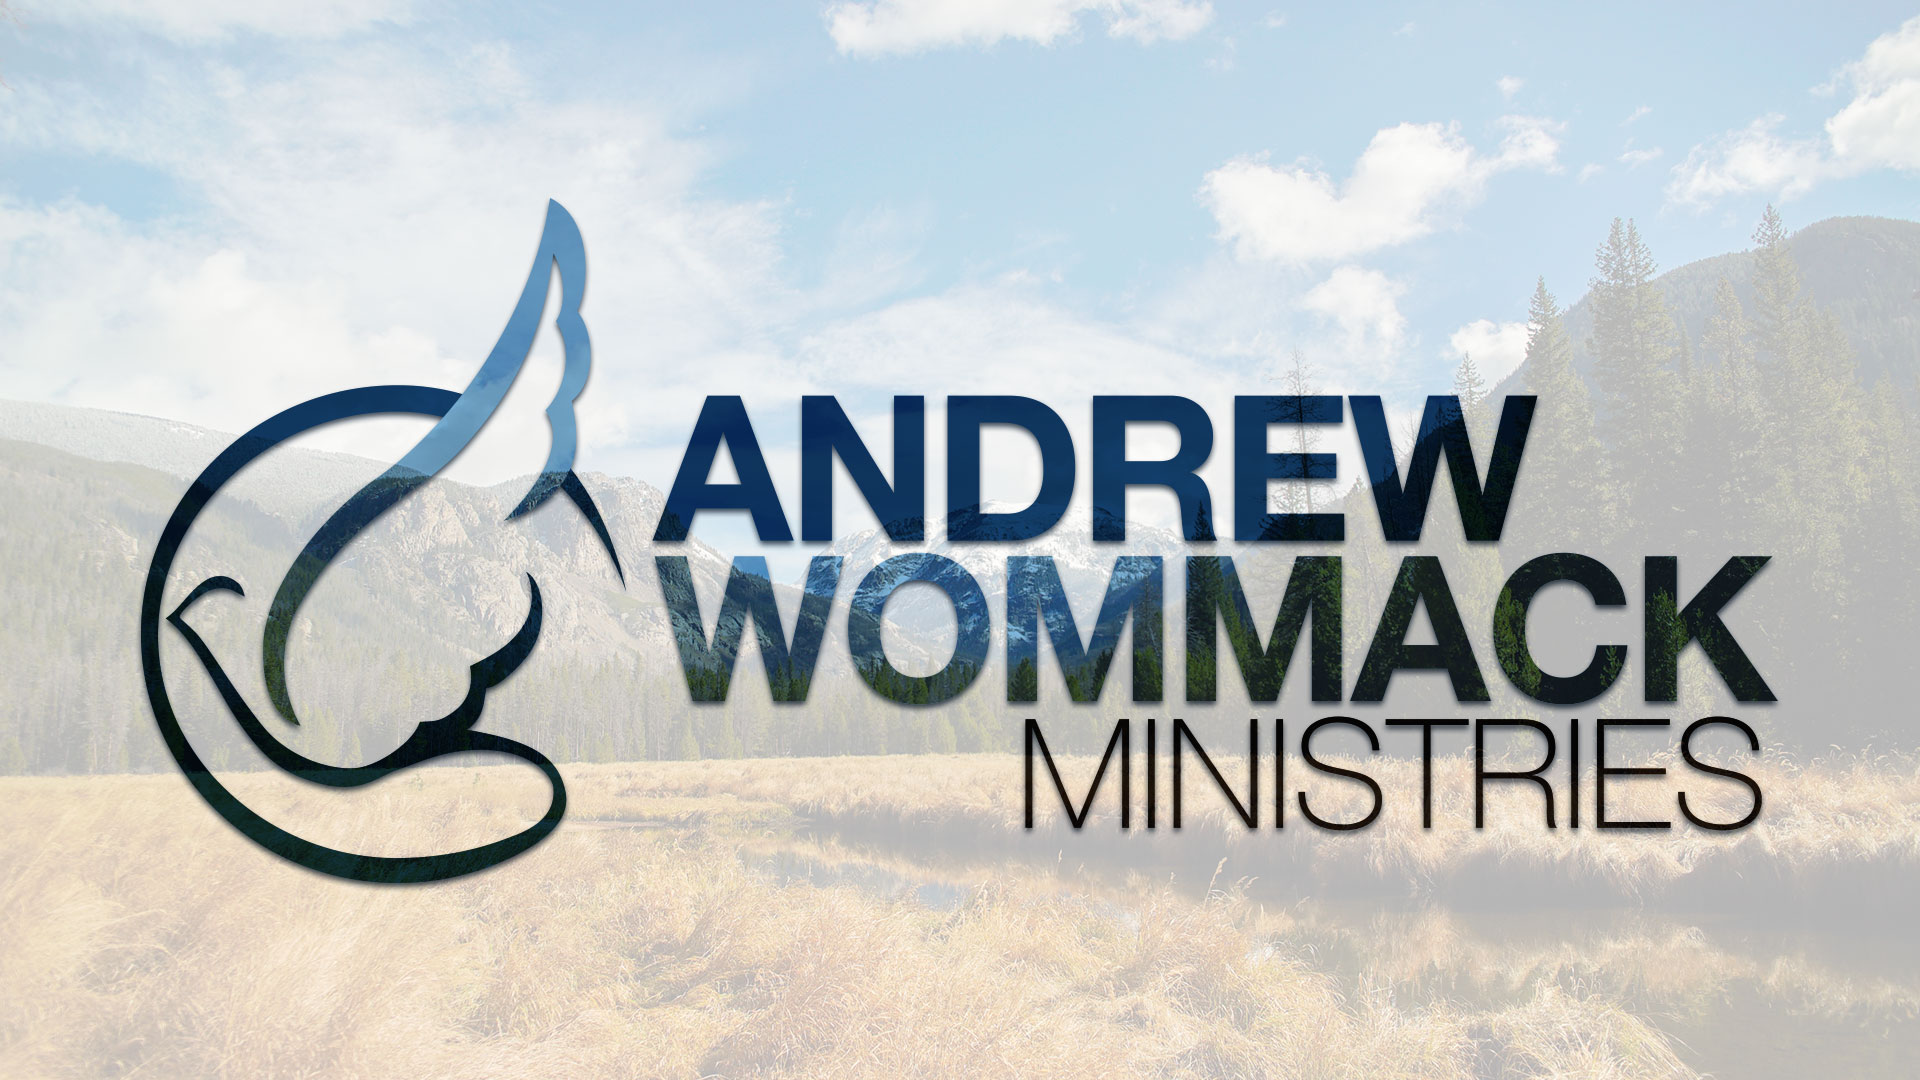 This Week's TV - Andrew Wommack Ministries